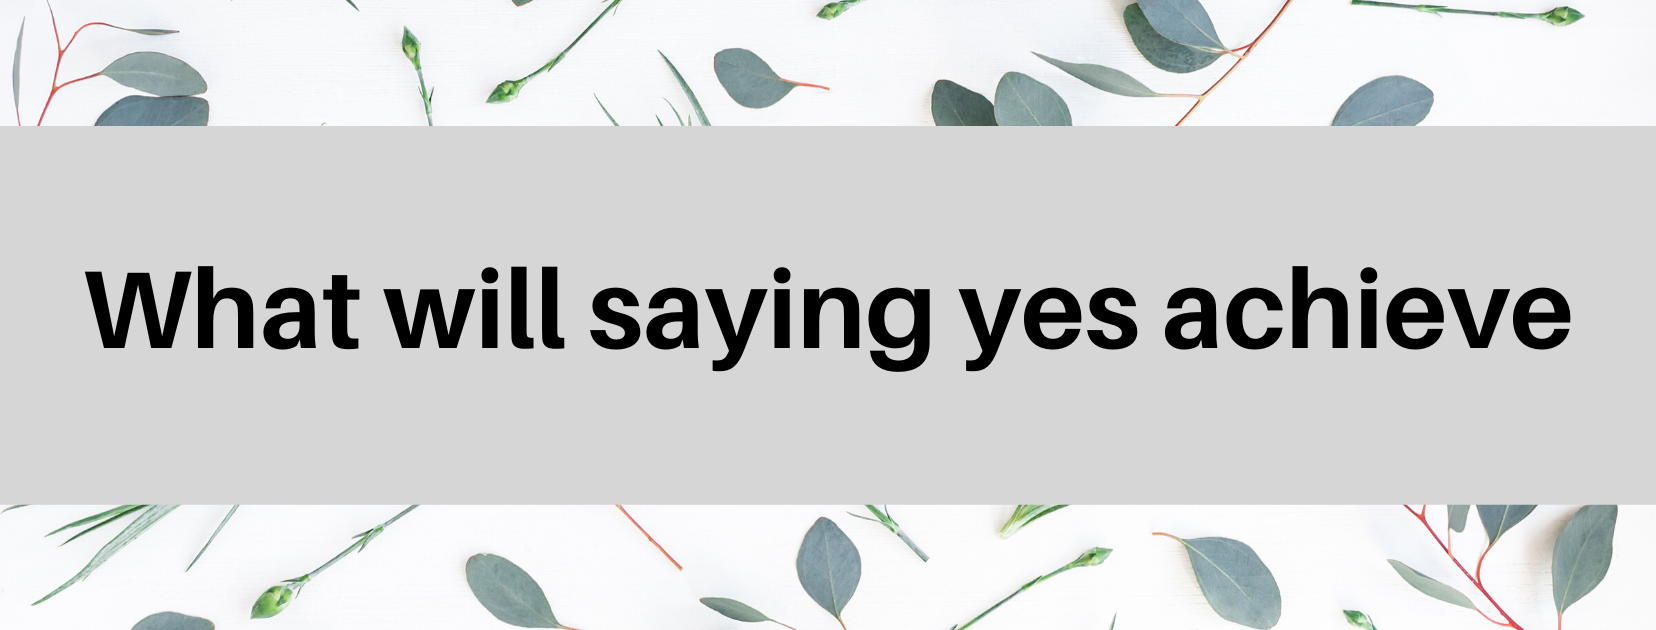 what will saying yes achieve, learn to say no